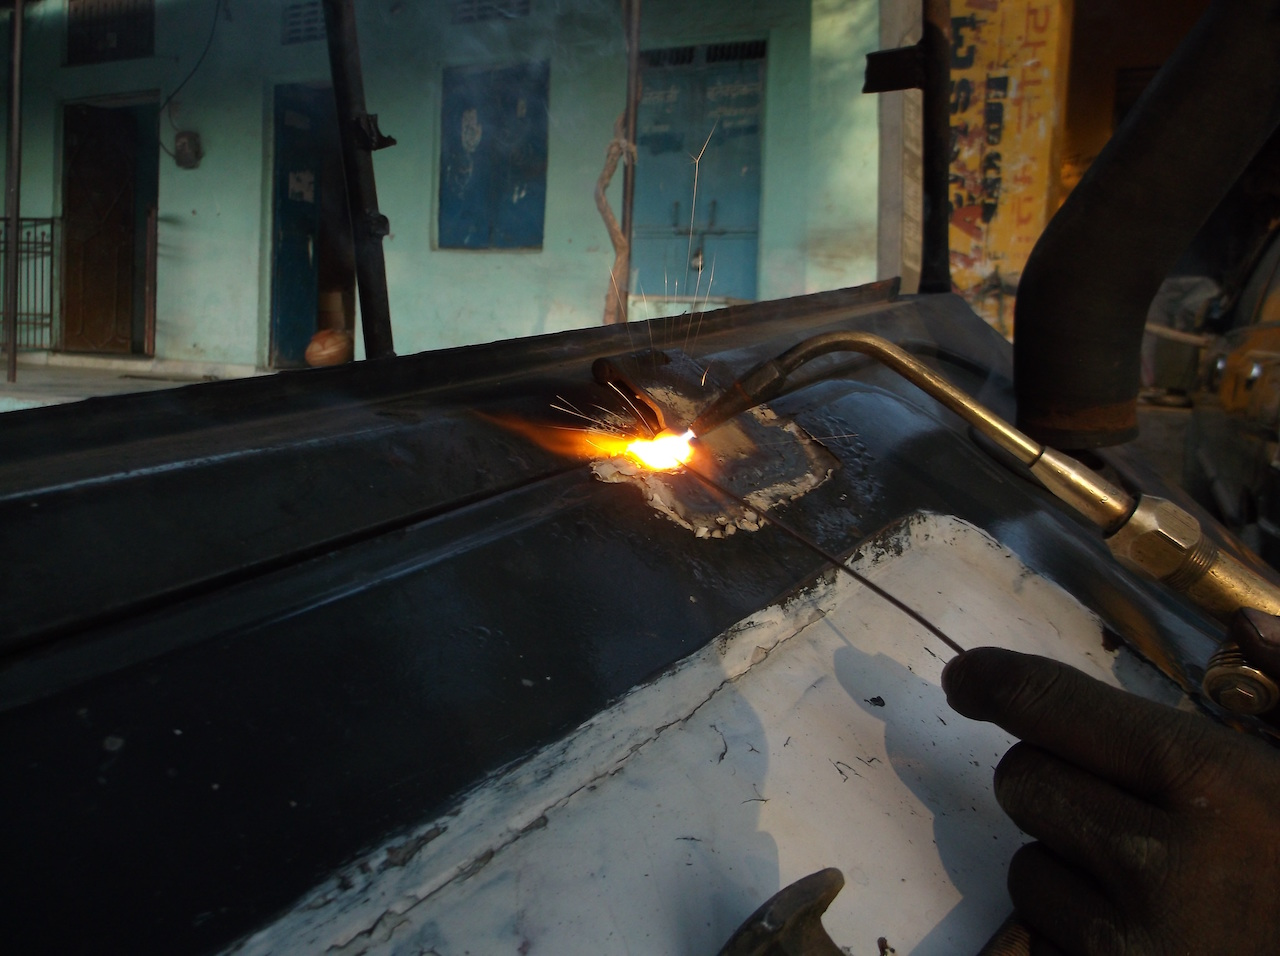 A person welding some metal